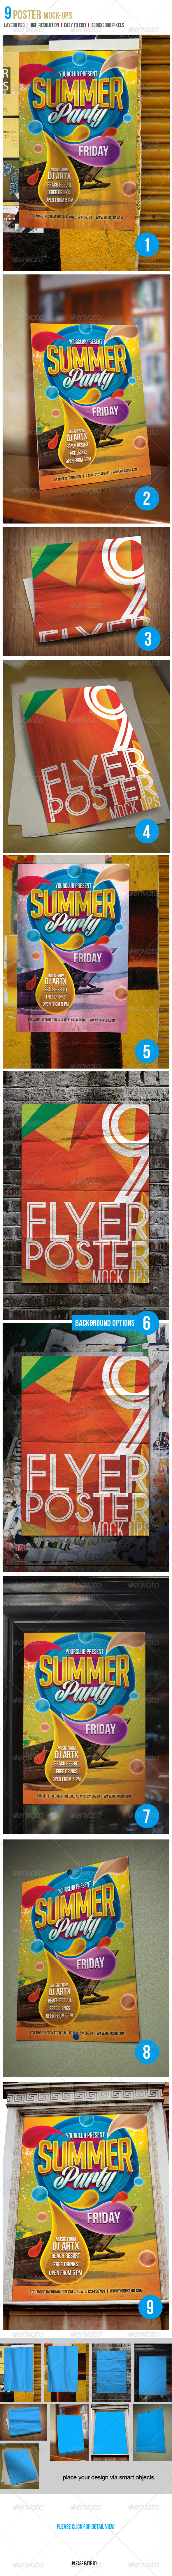 Poster Mock-Up Set - Product Mock-Ups Graphics